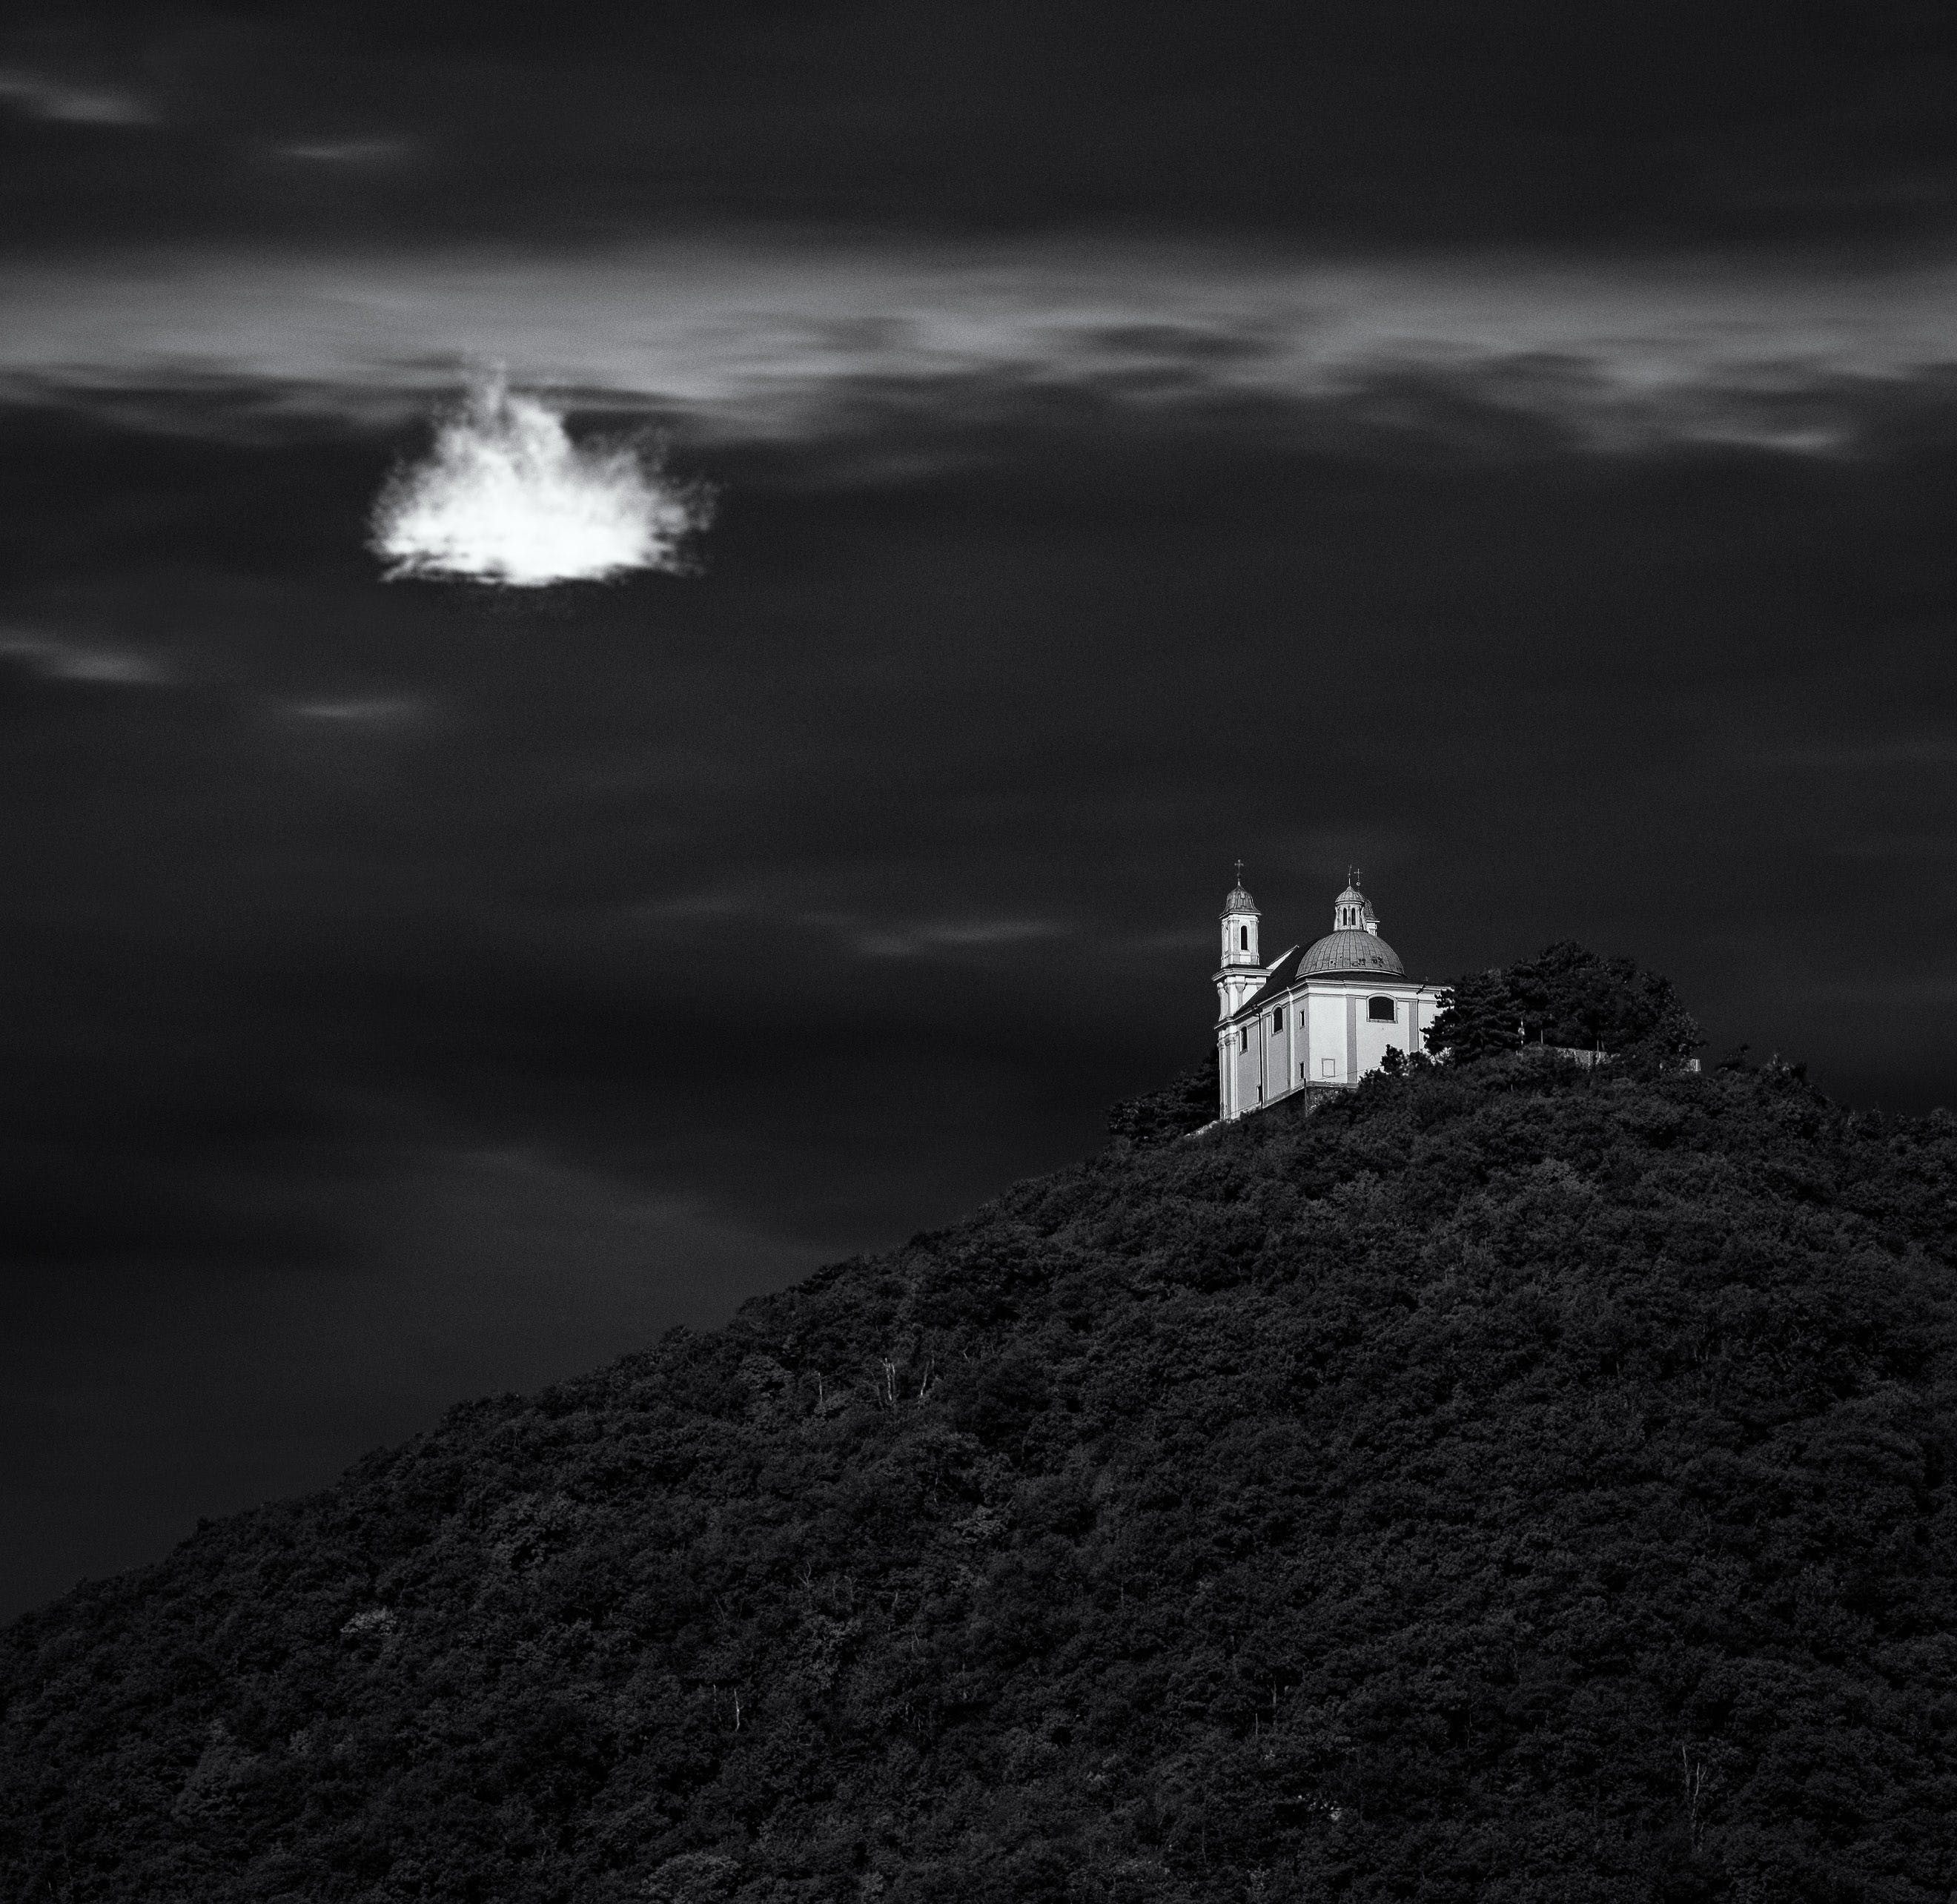 Grayscale Photo of Castle